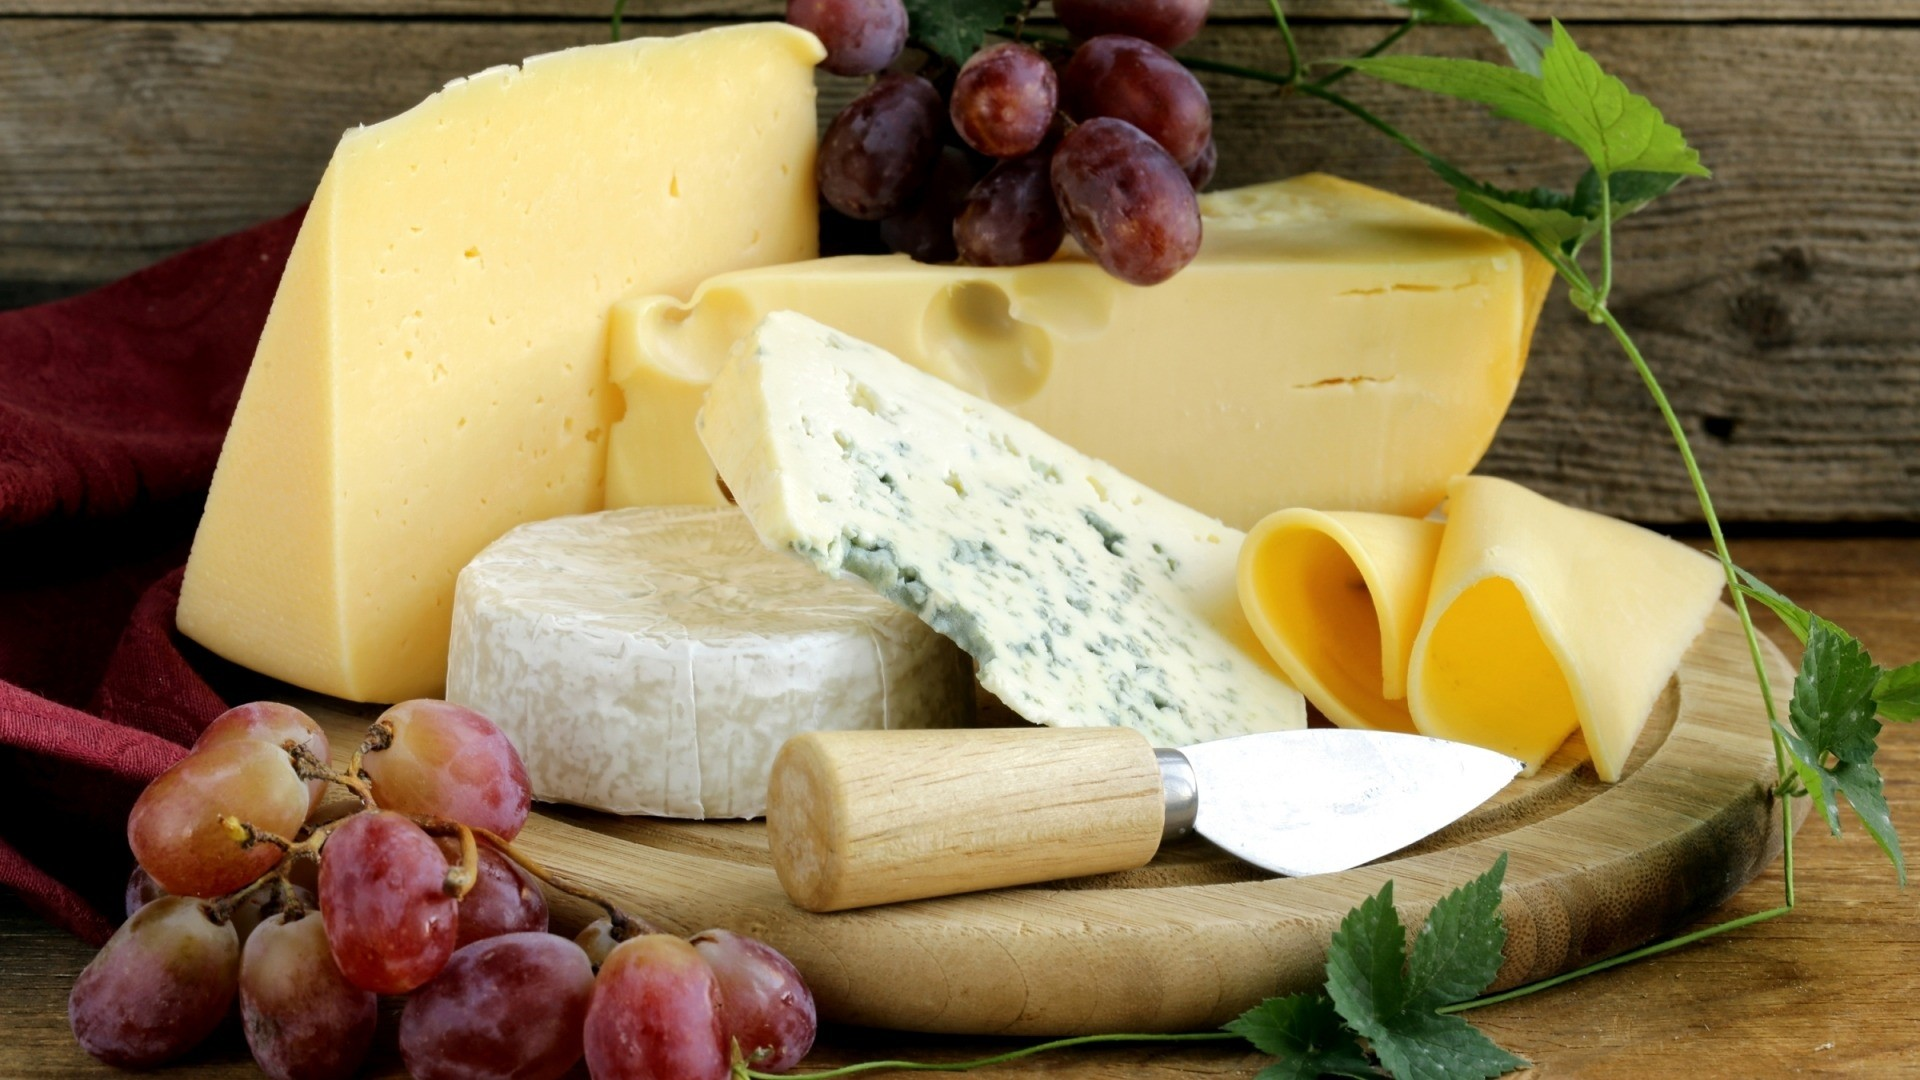 Cheese Wallpaper Download Full